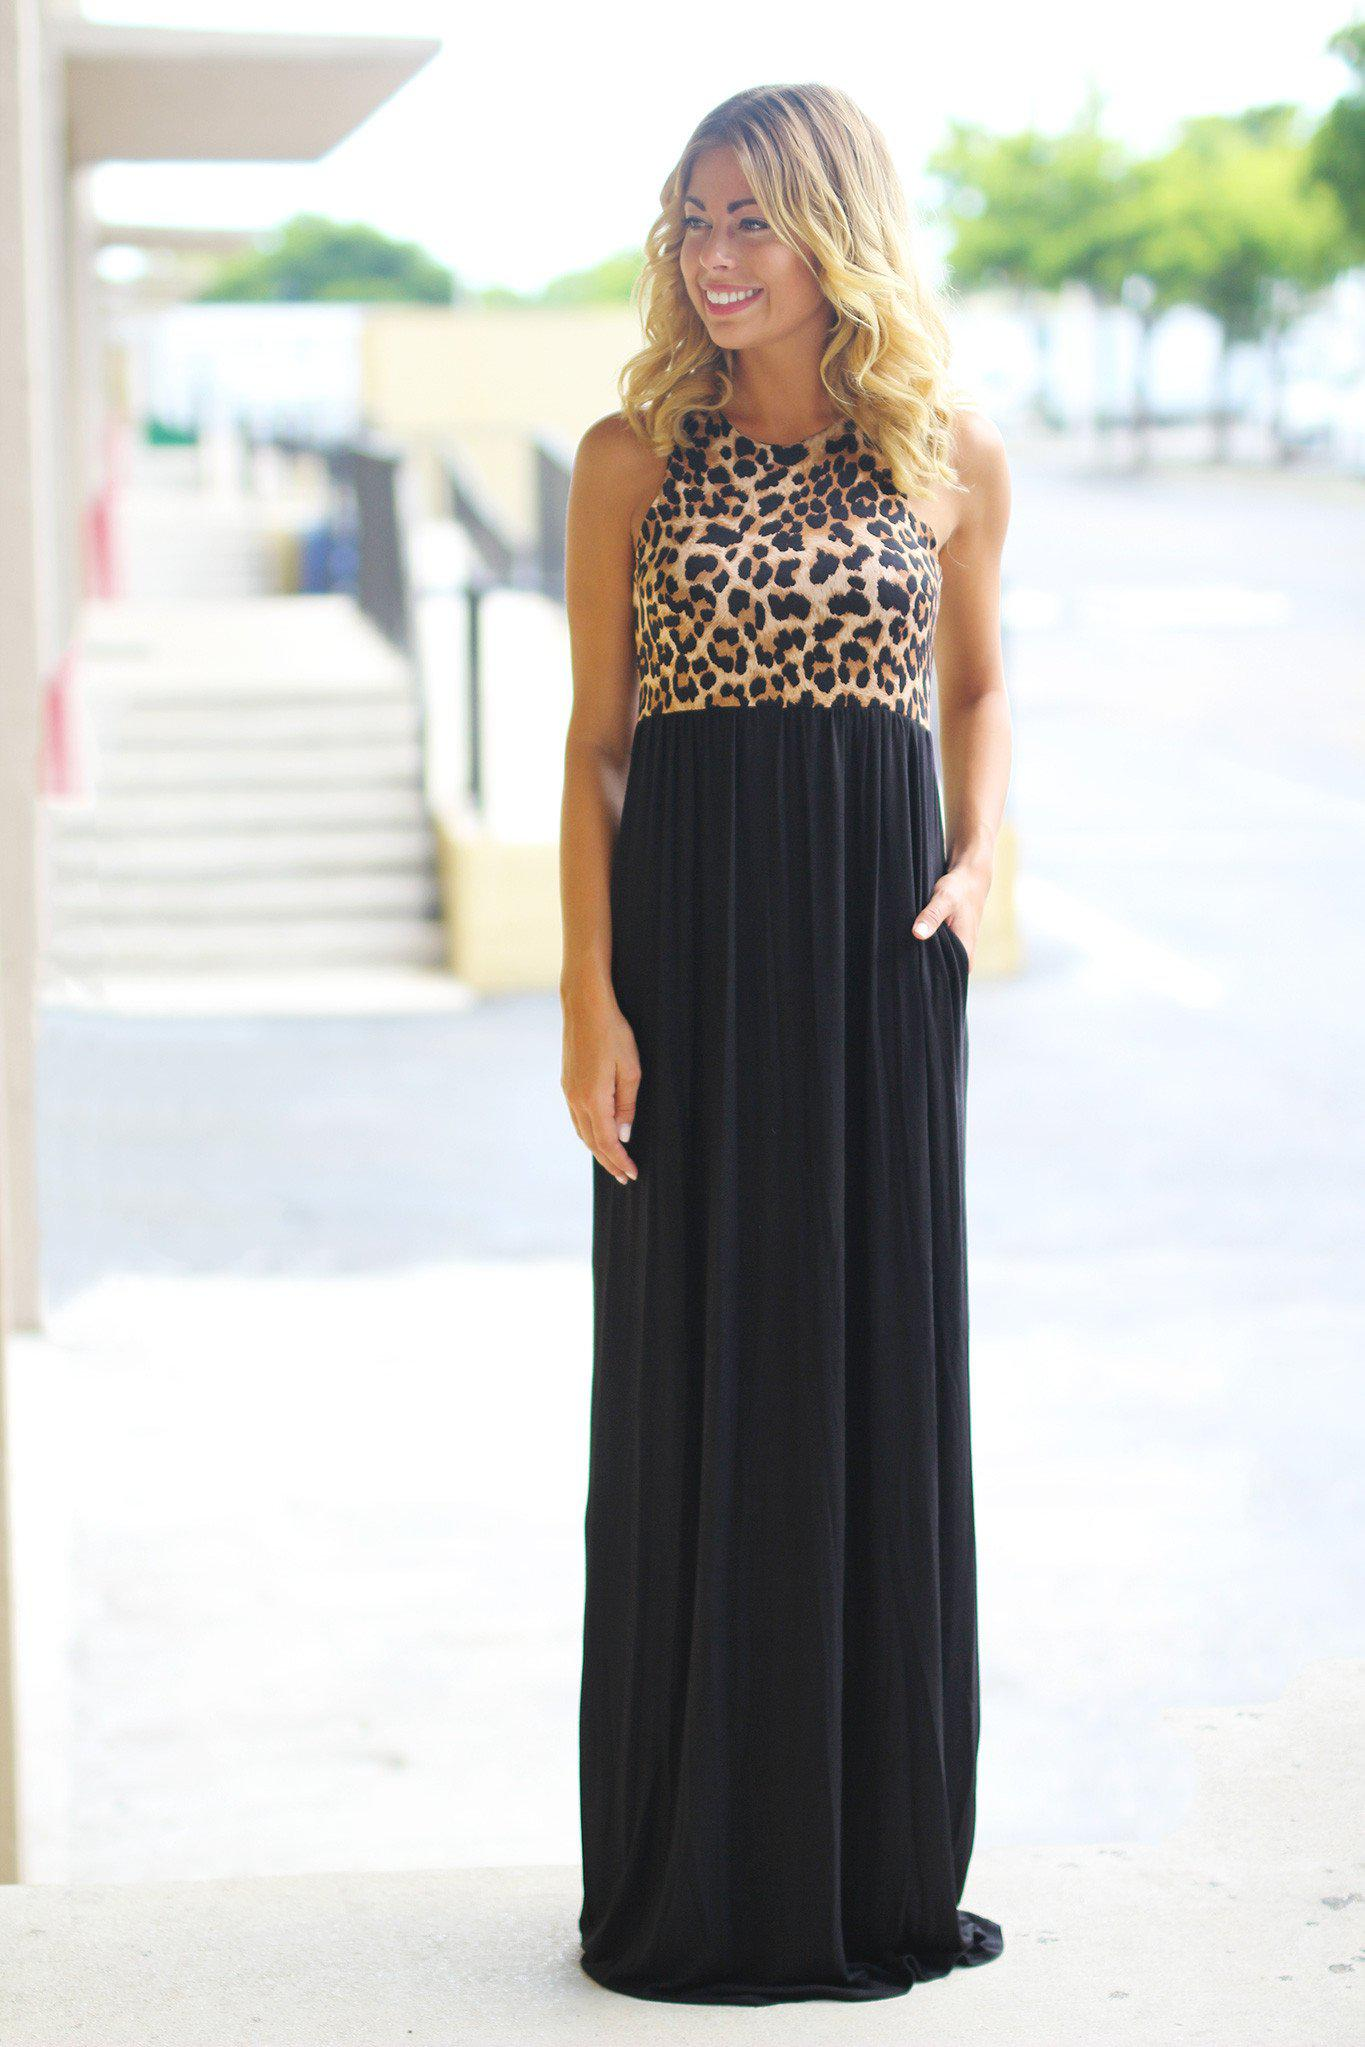 Black Leopard Maxi Dress with Pockets